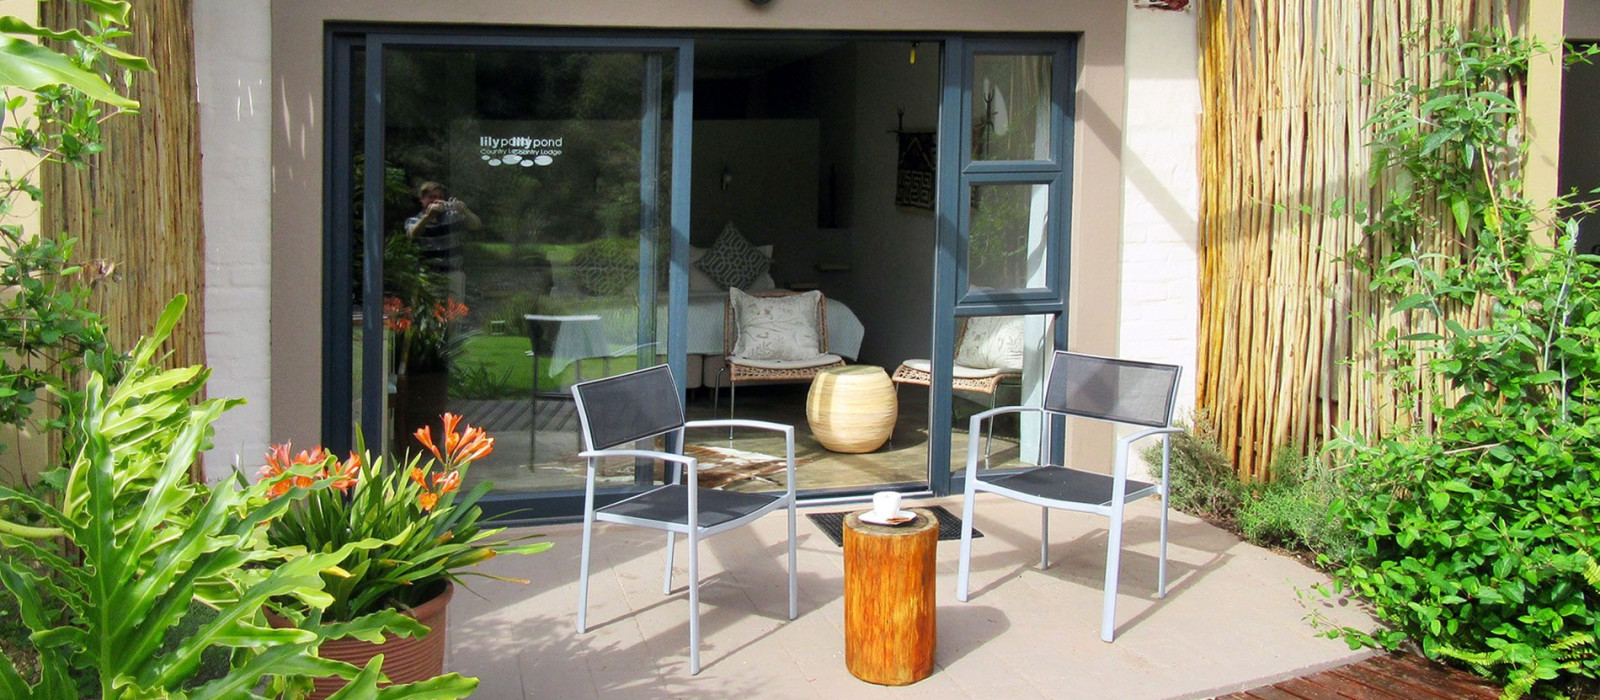 Hotel Lily Pond Country Lodge Südafrika